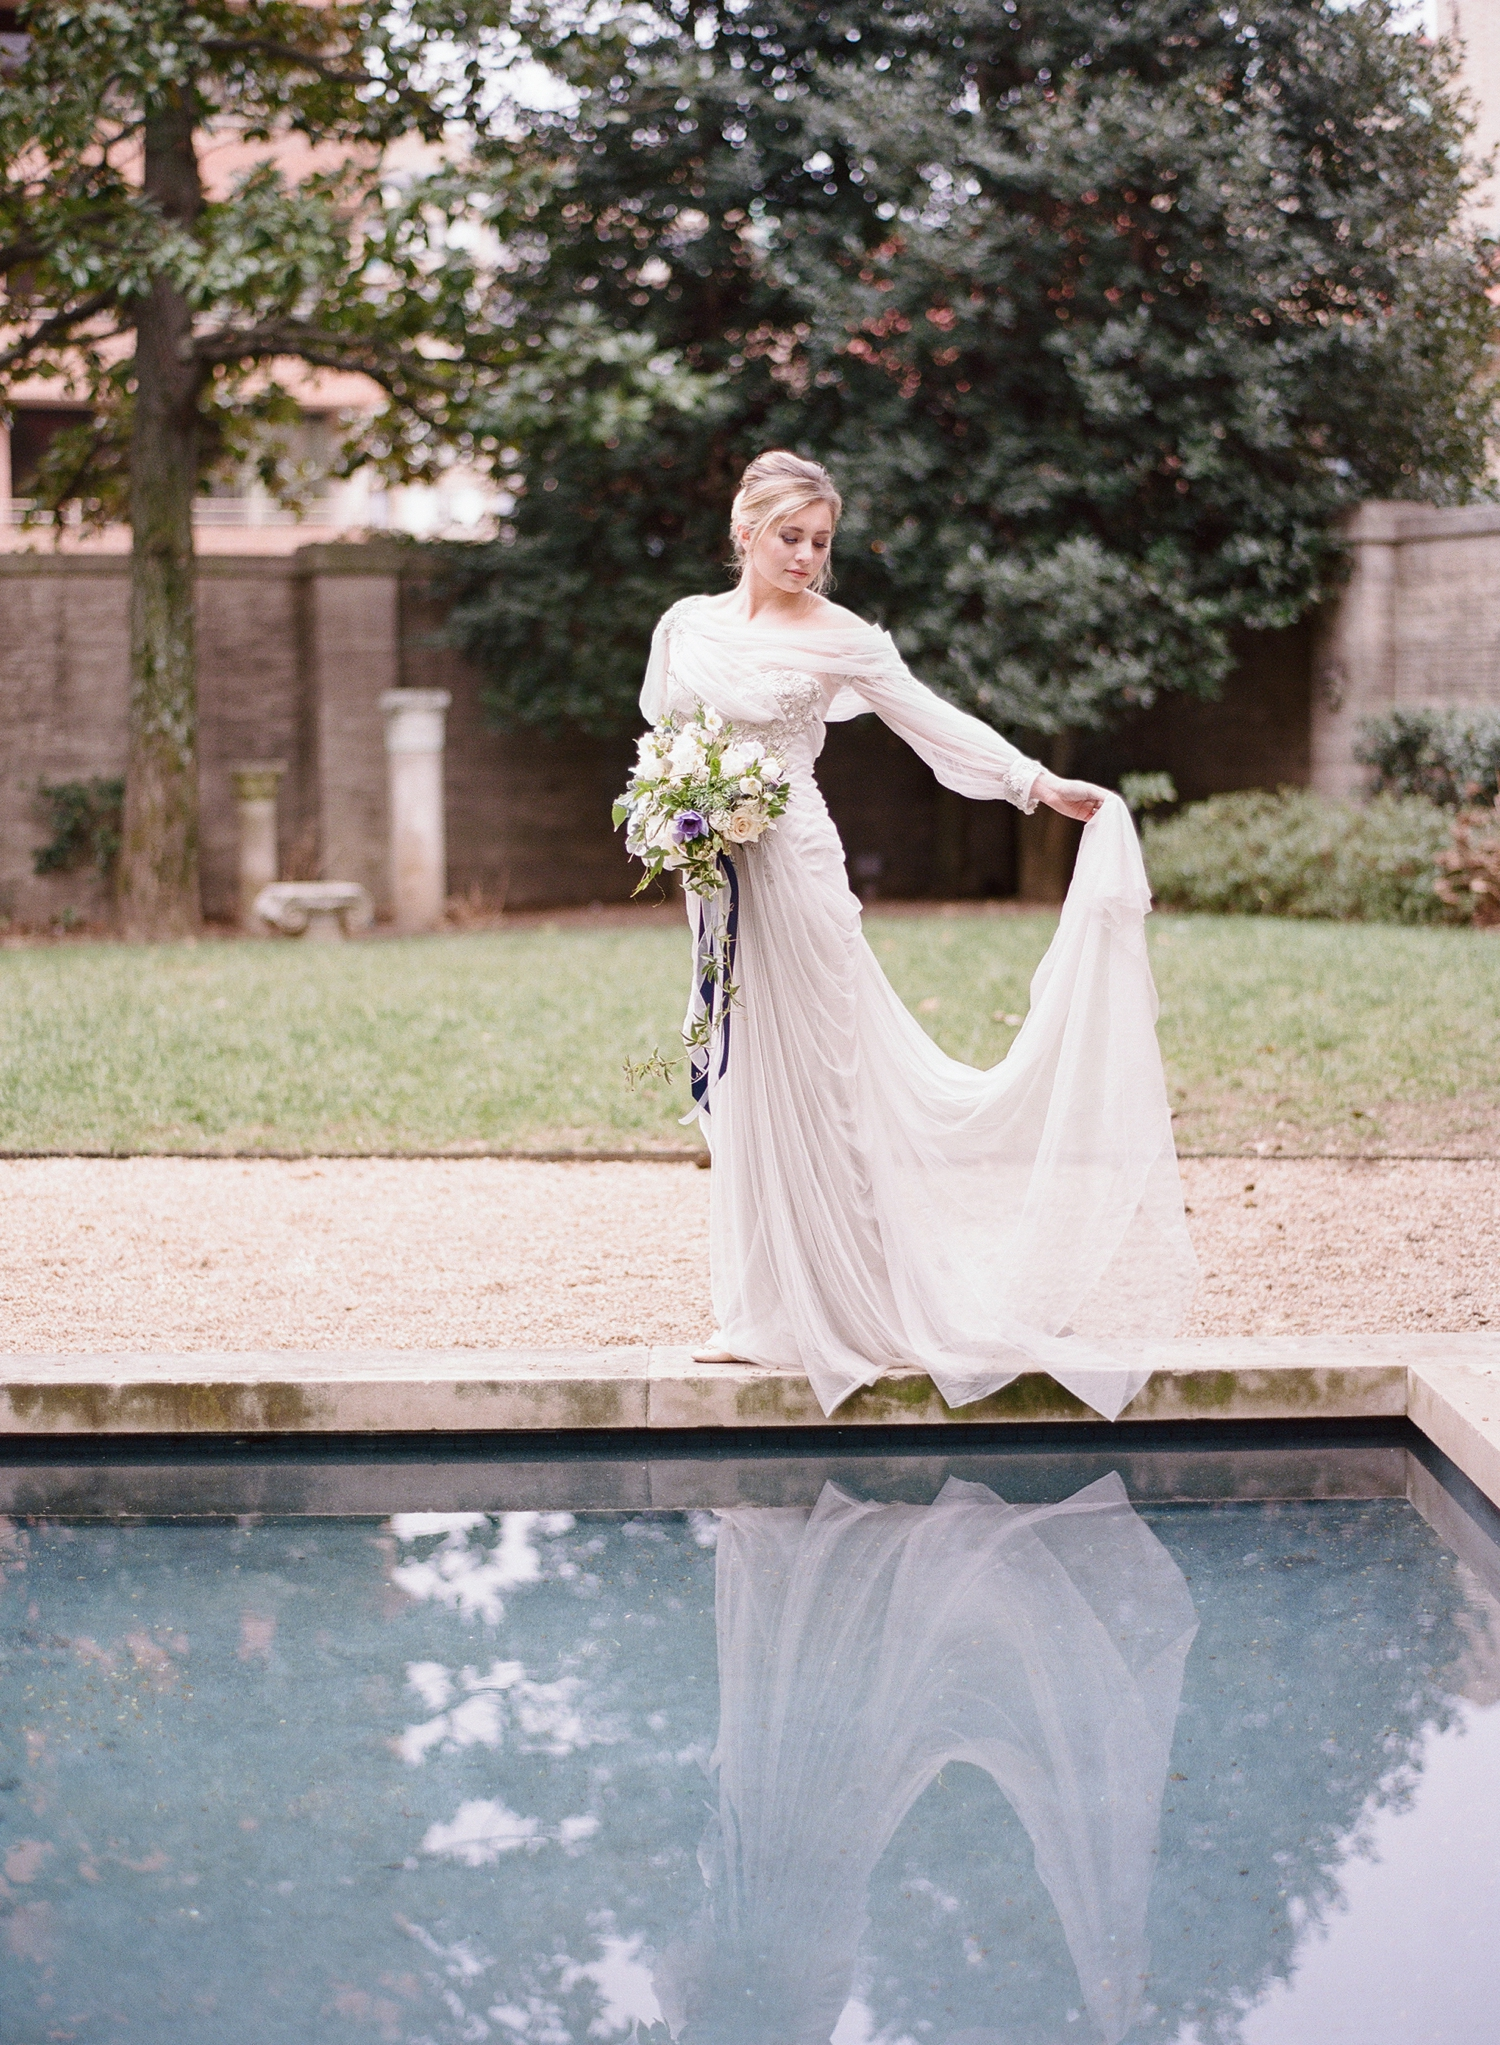 Anderson House wedding editorial, Washington DC